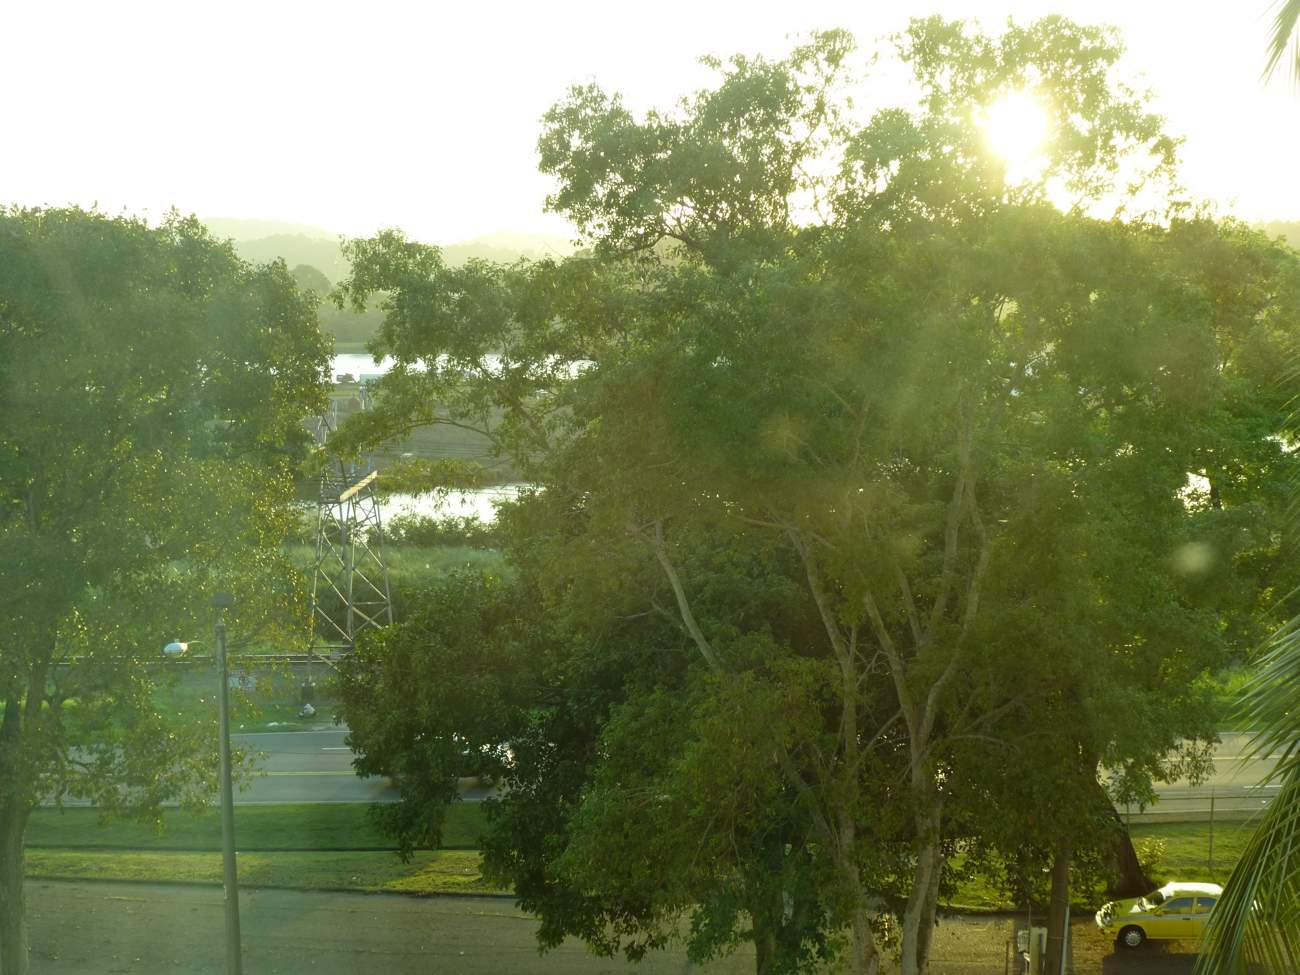 View of the Canal from our hotel room.